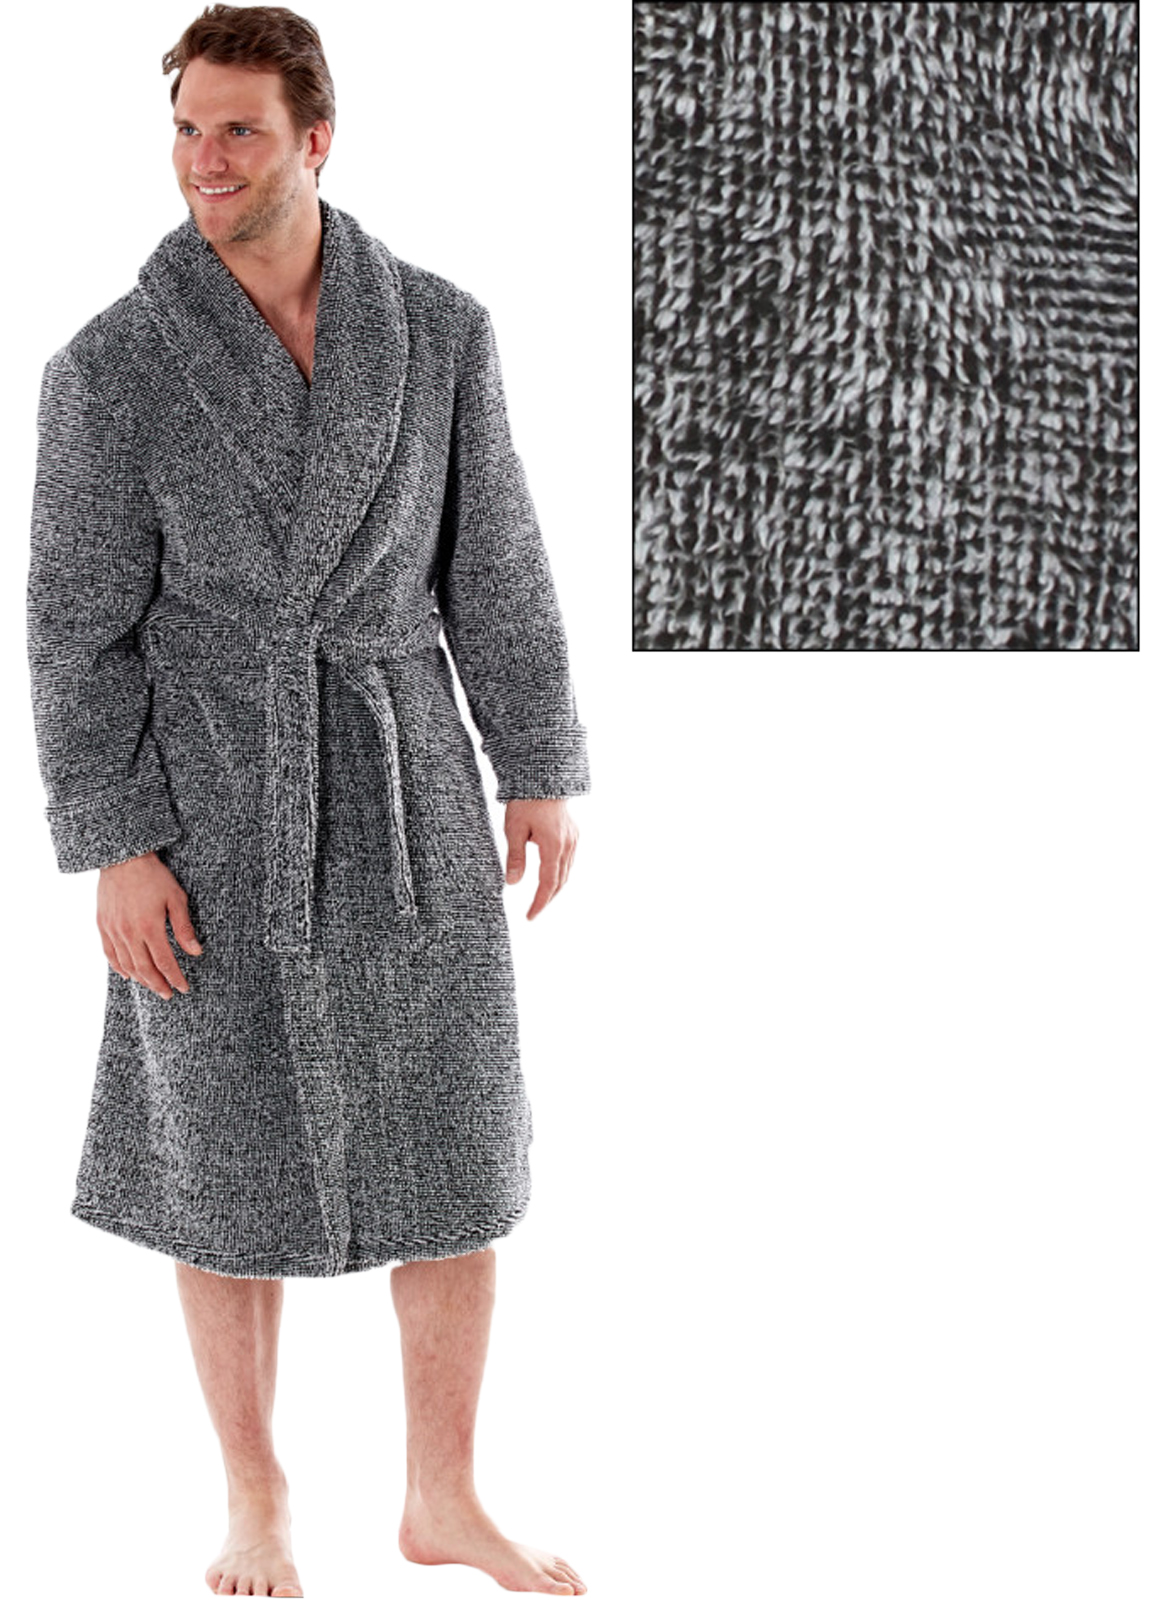 Mens Long Dressing Gowns - Home Decorating Ideas & Interior Design